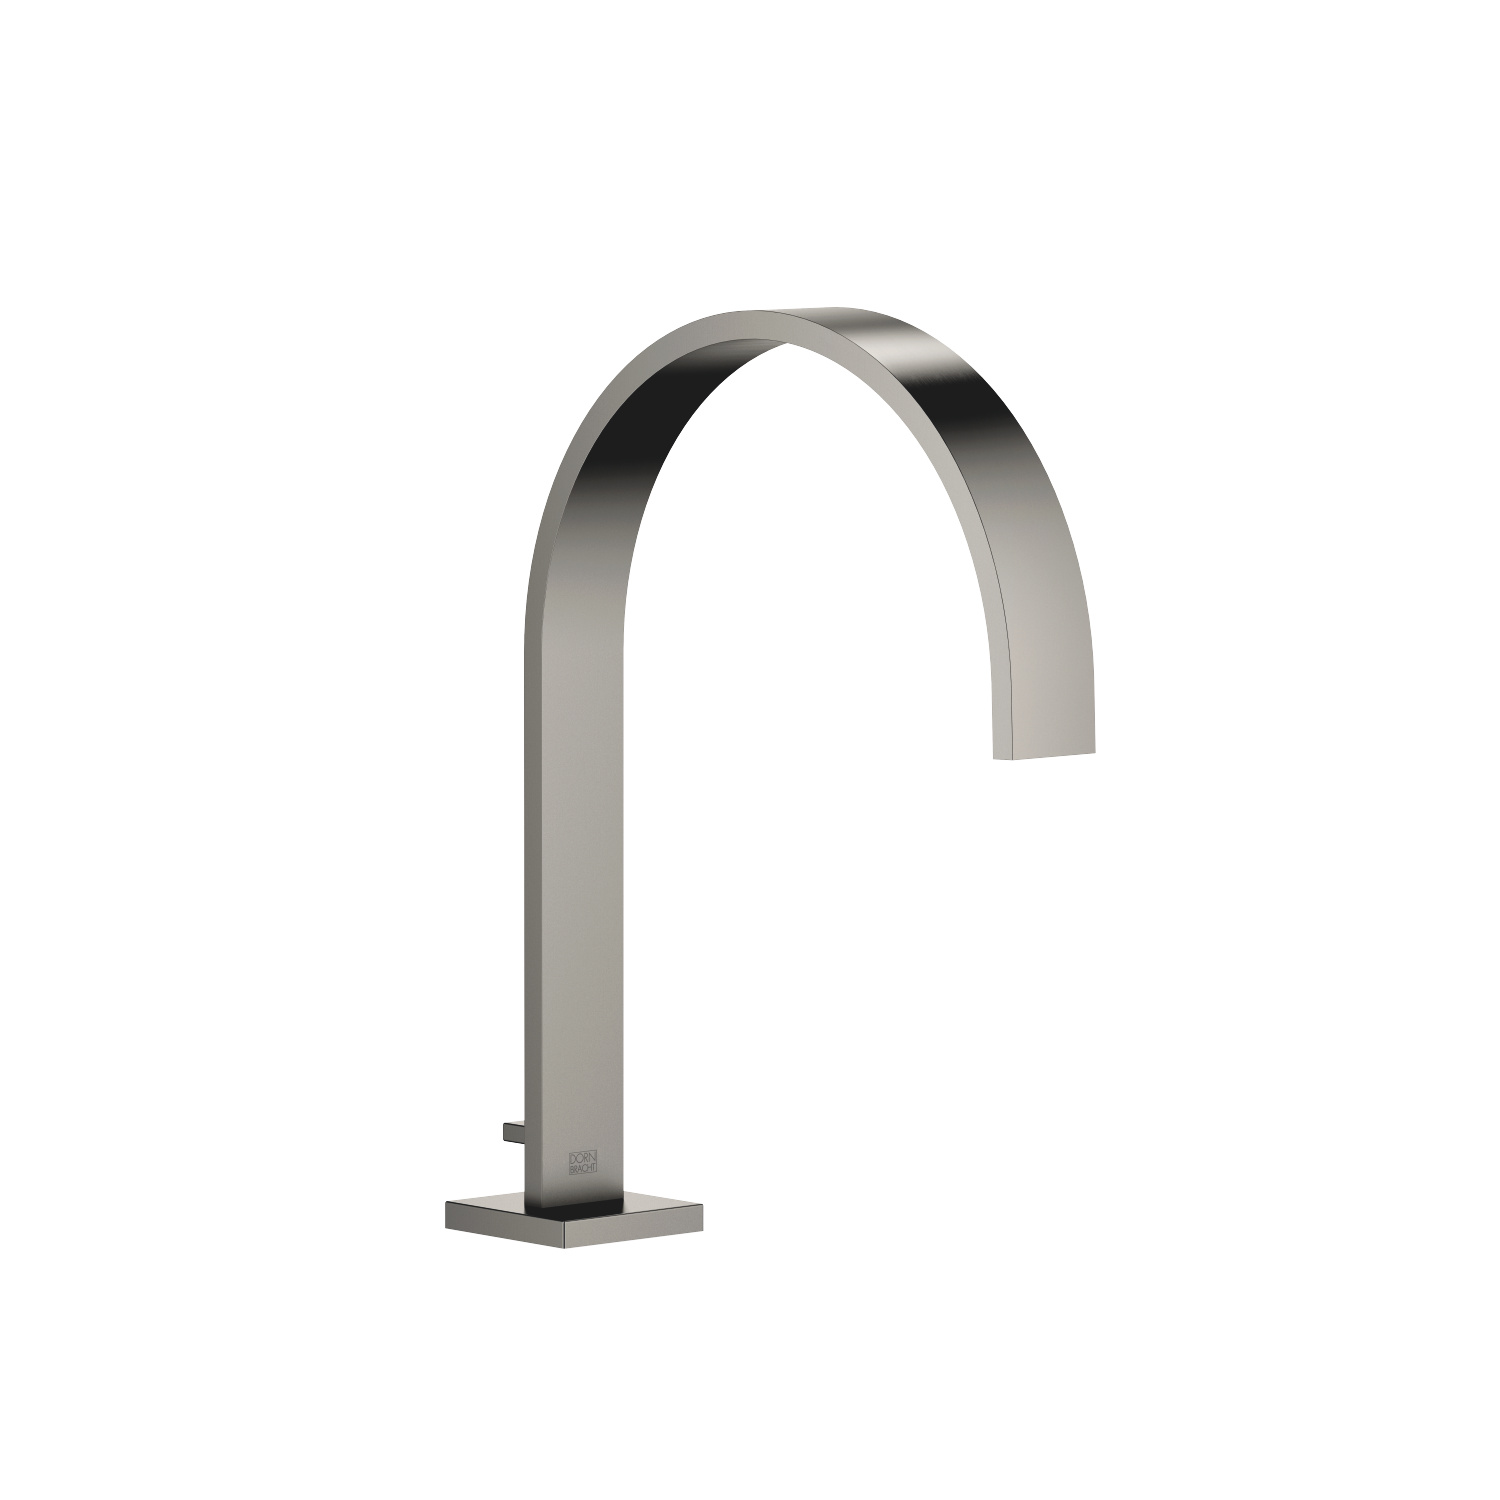 bath spout with diverter for deck mounting - Dark Platinum matt